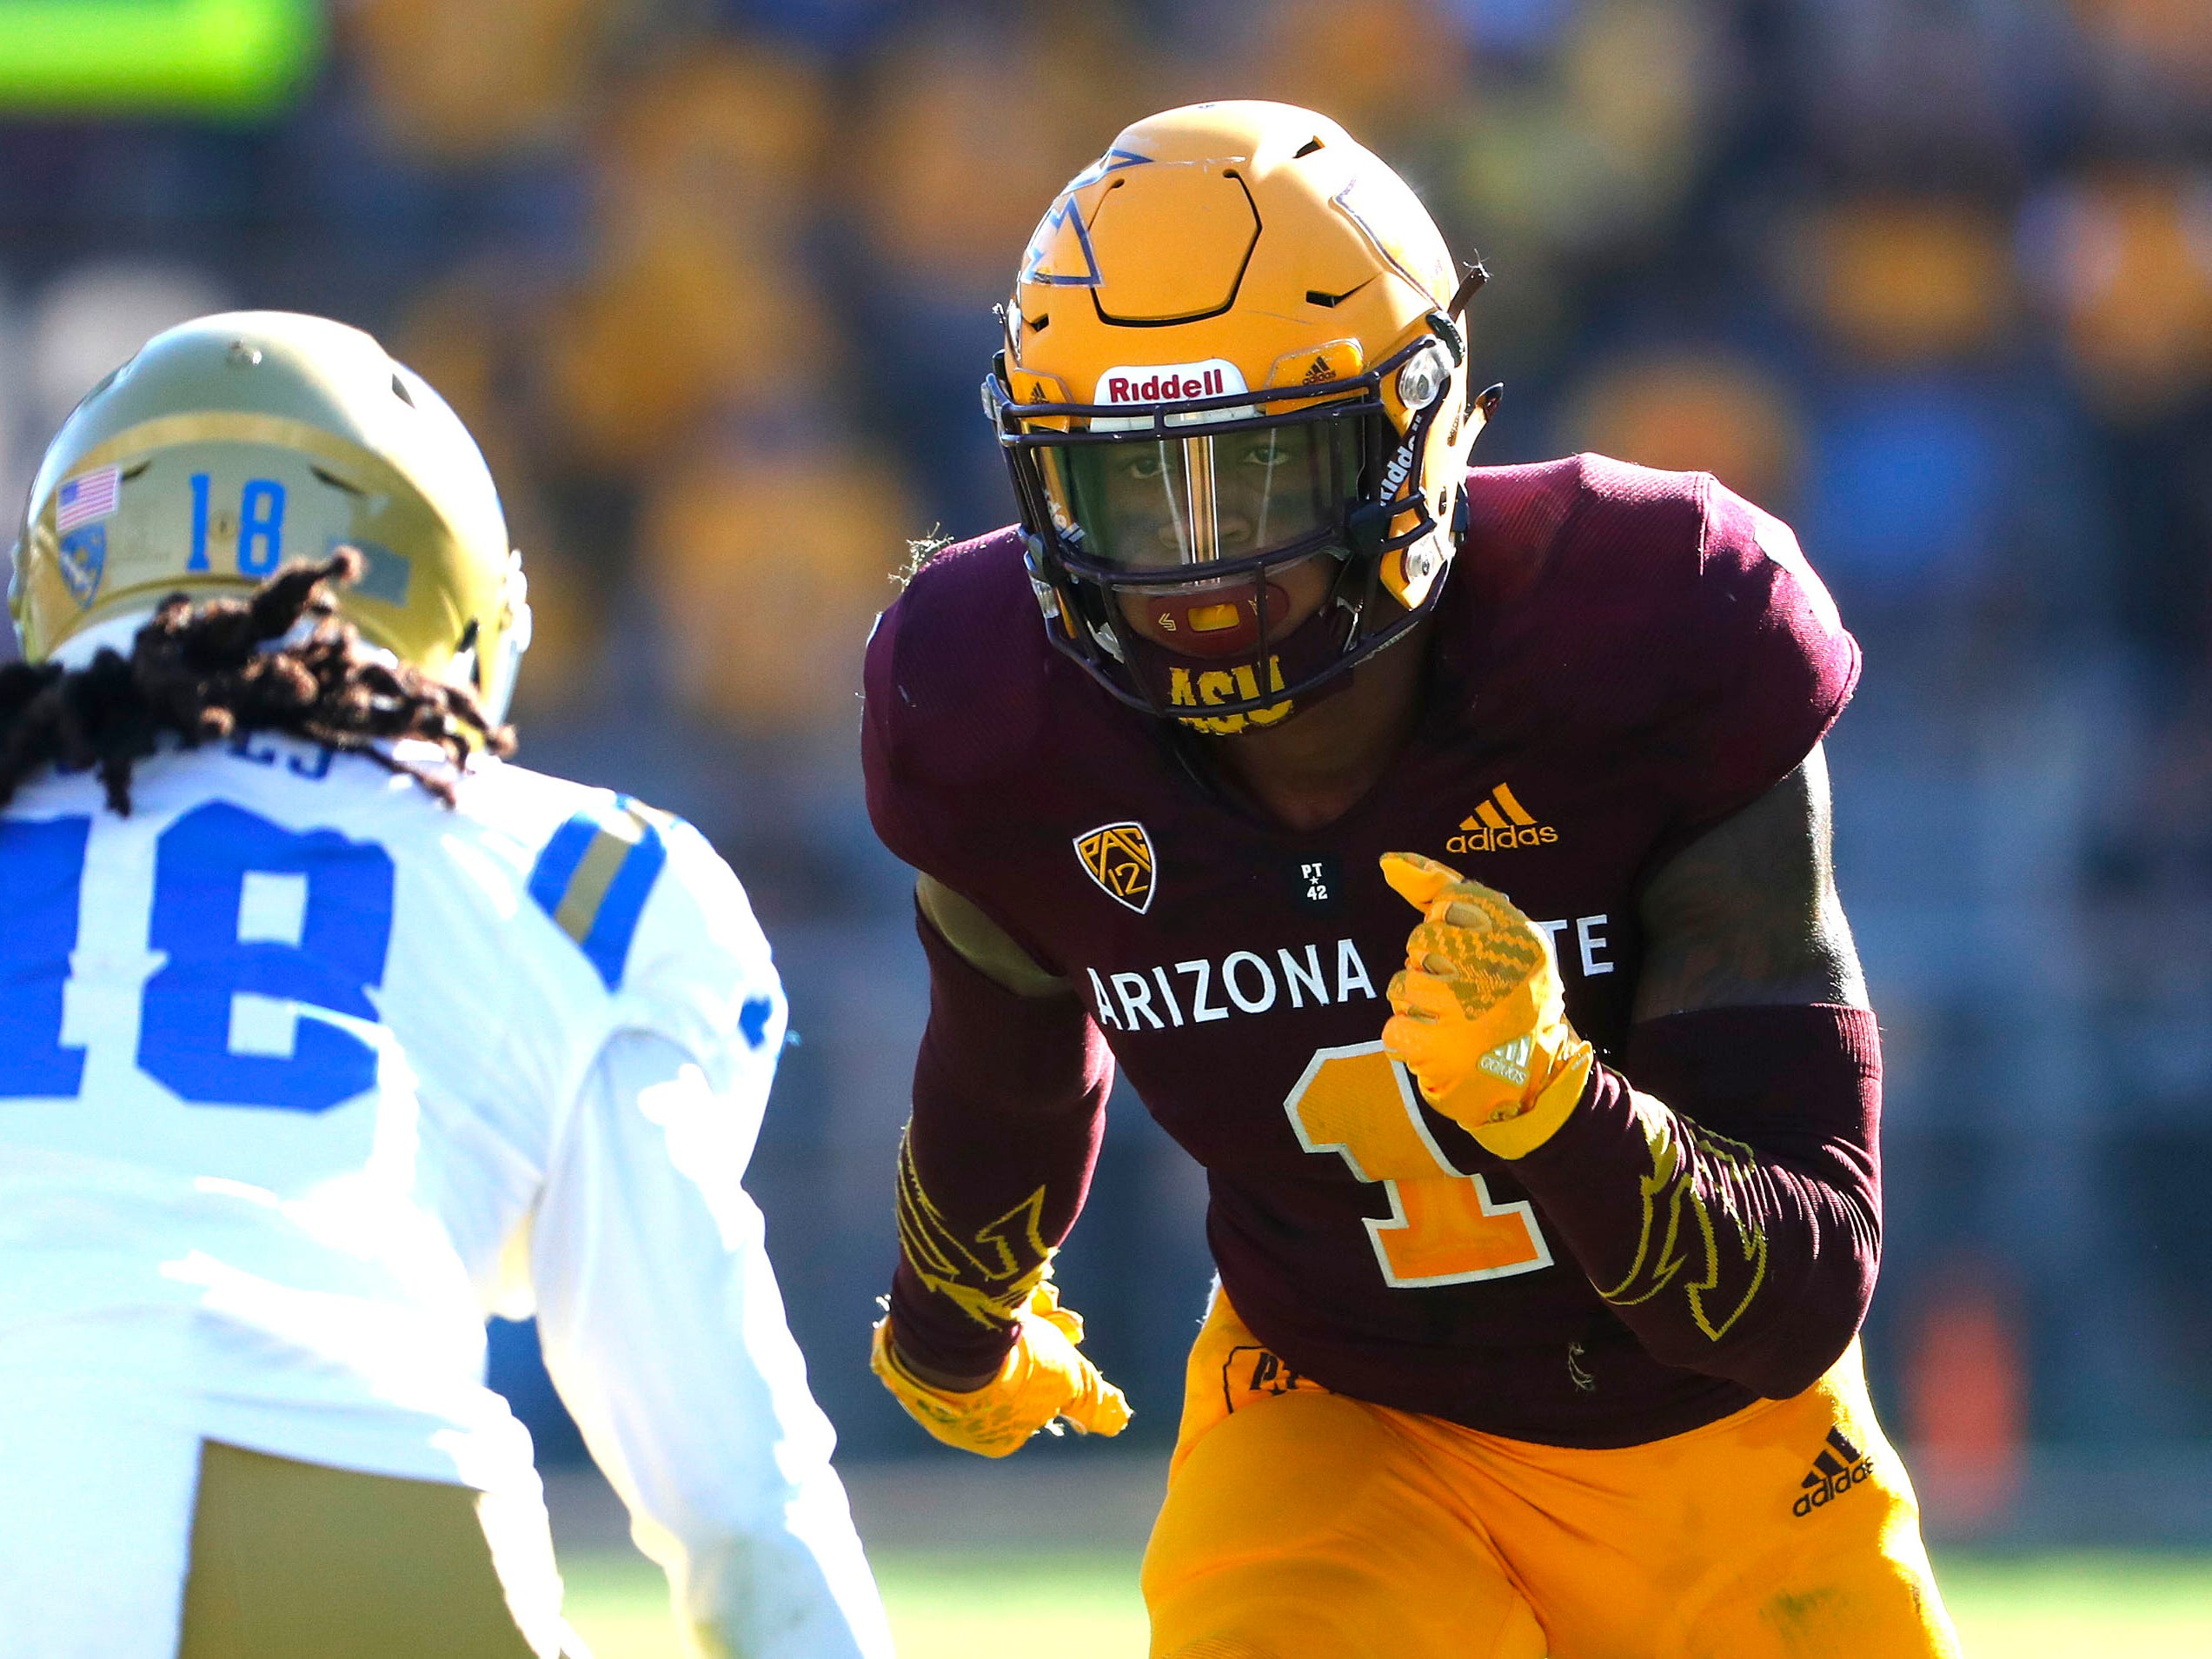 Arizona State receiver N'Keal Harry.